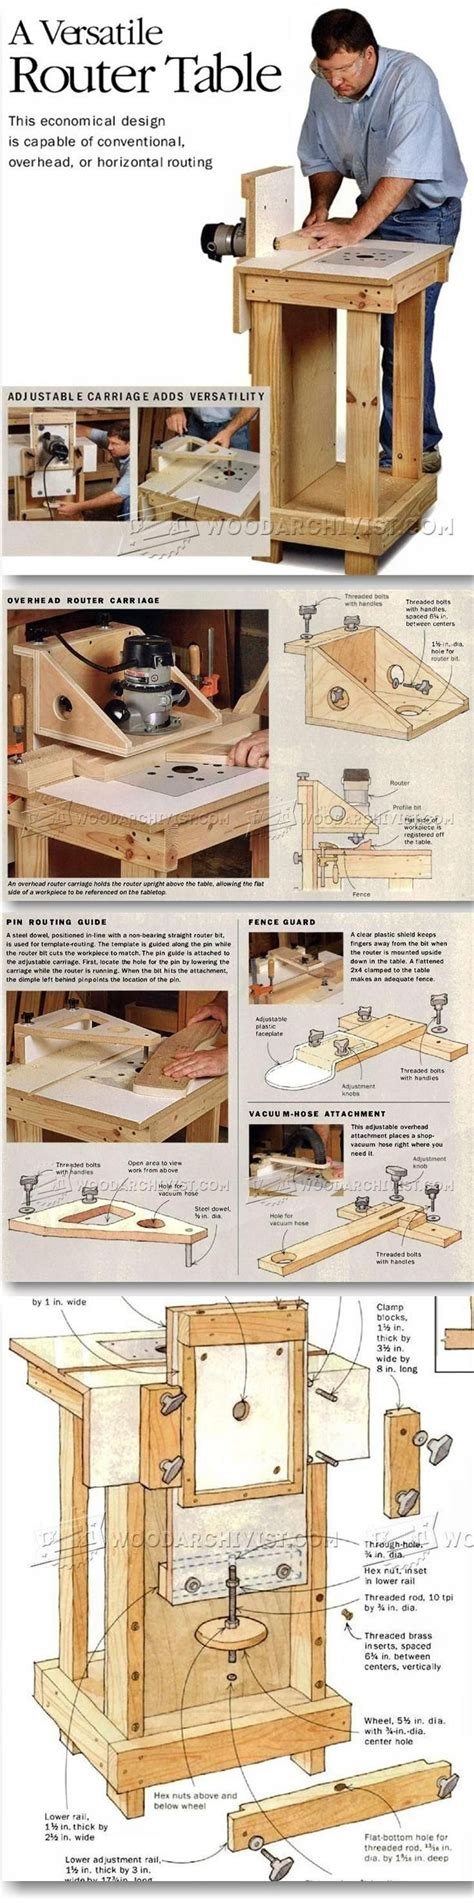 router plans woodworking free horizontal router table plans router tips jigs and